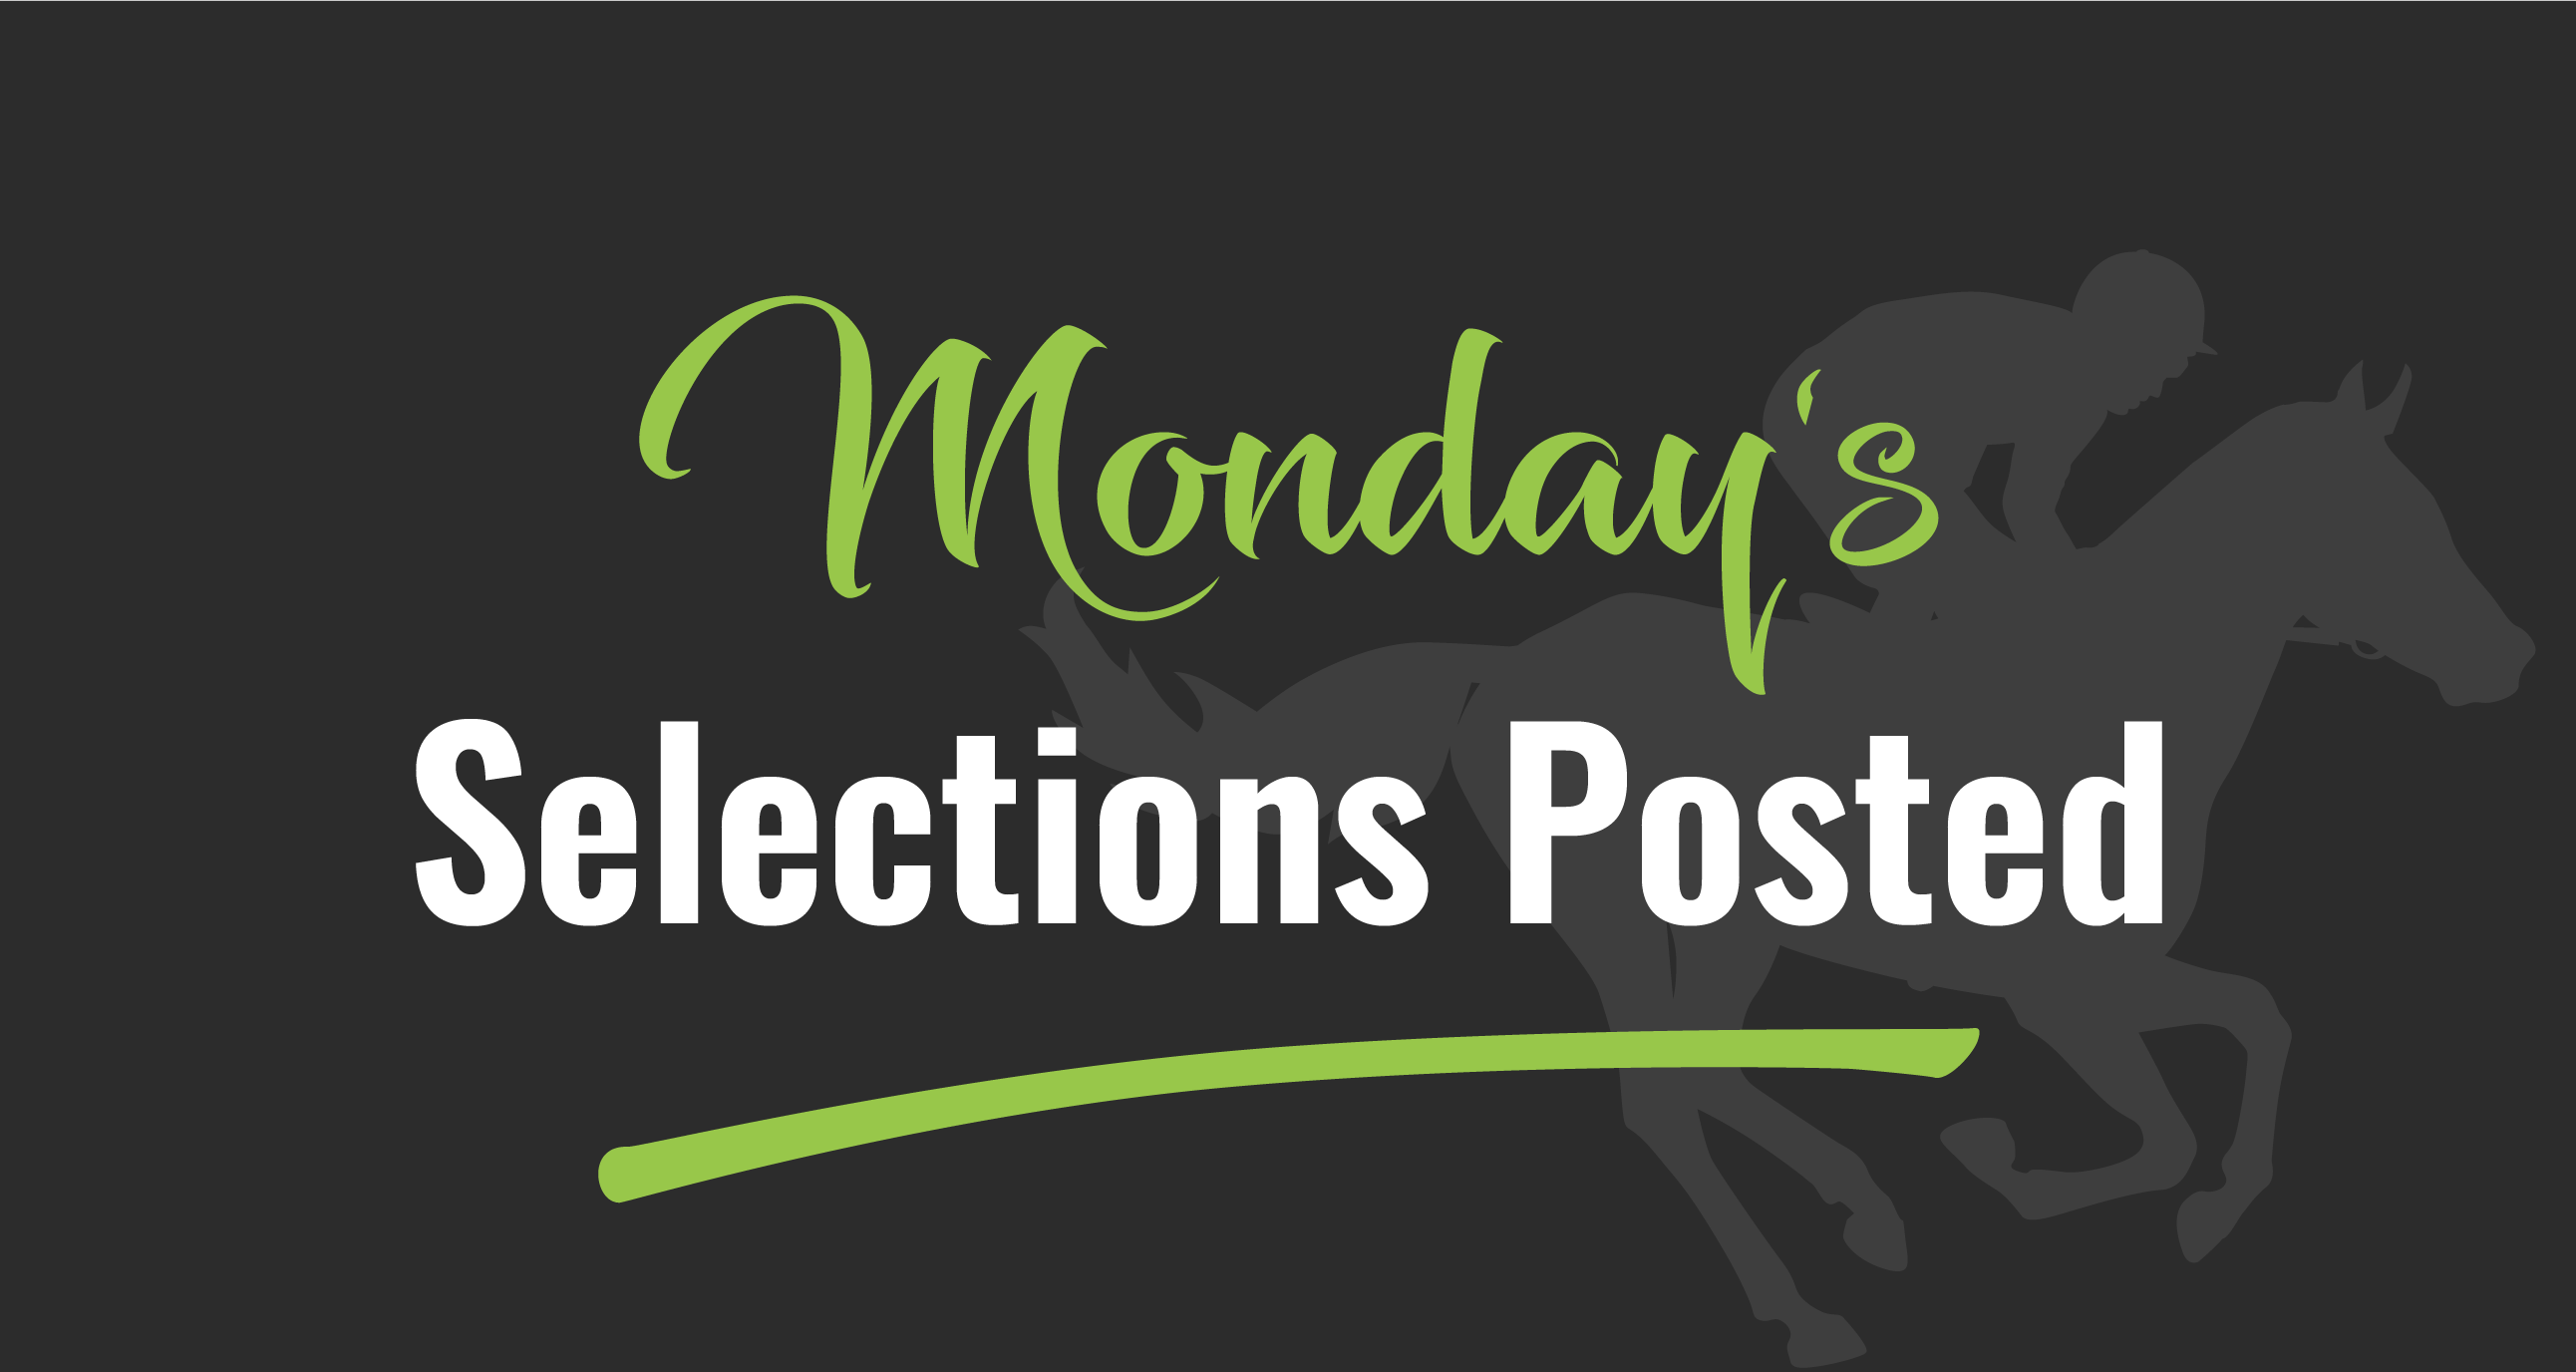 Selections for Monday 2 December 2019